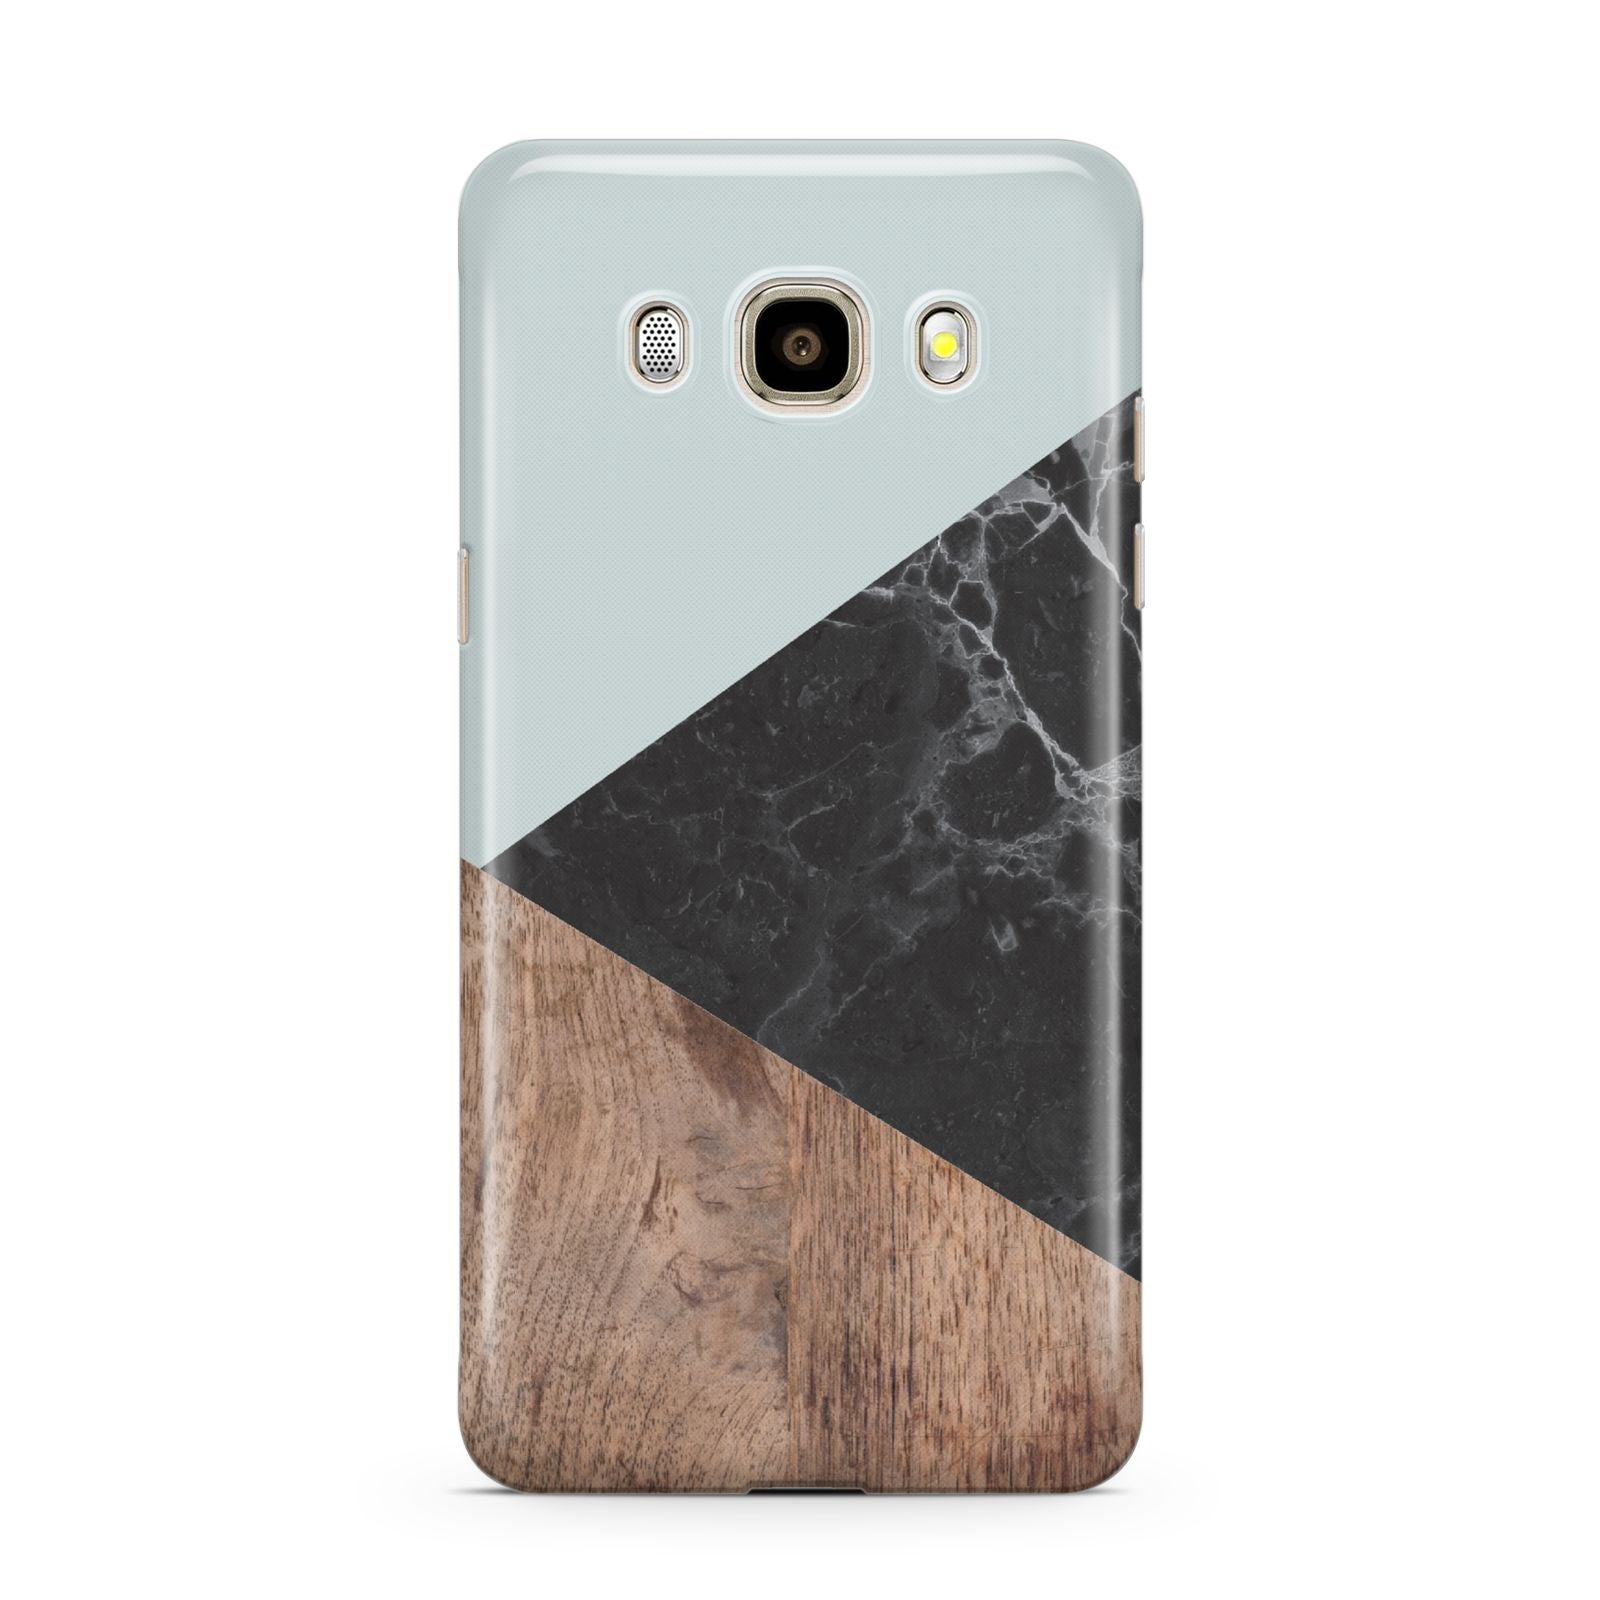 Marble Wood Geometric 2 Samsung Galaxy J7 2016 Case on gold phone